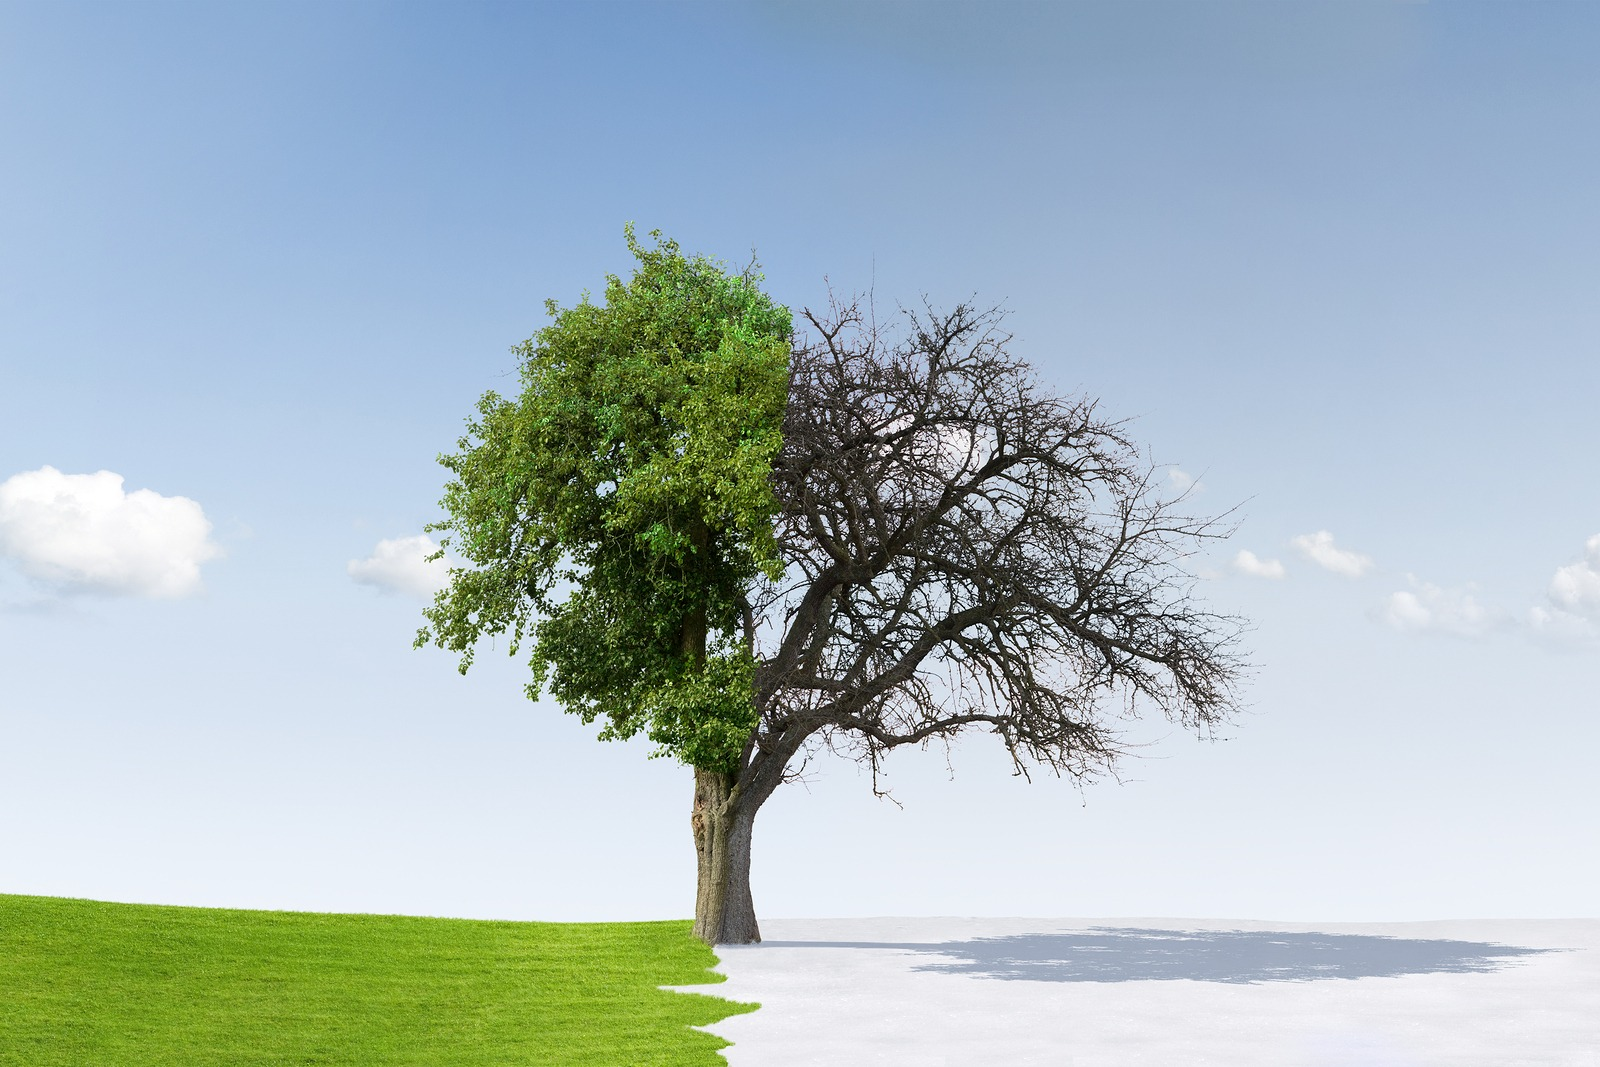 Tree split between summer and winter to illustrate change of seasons from winter to summer